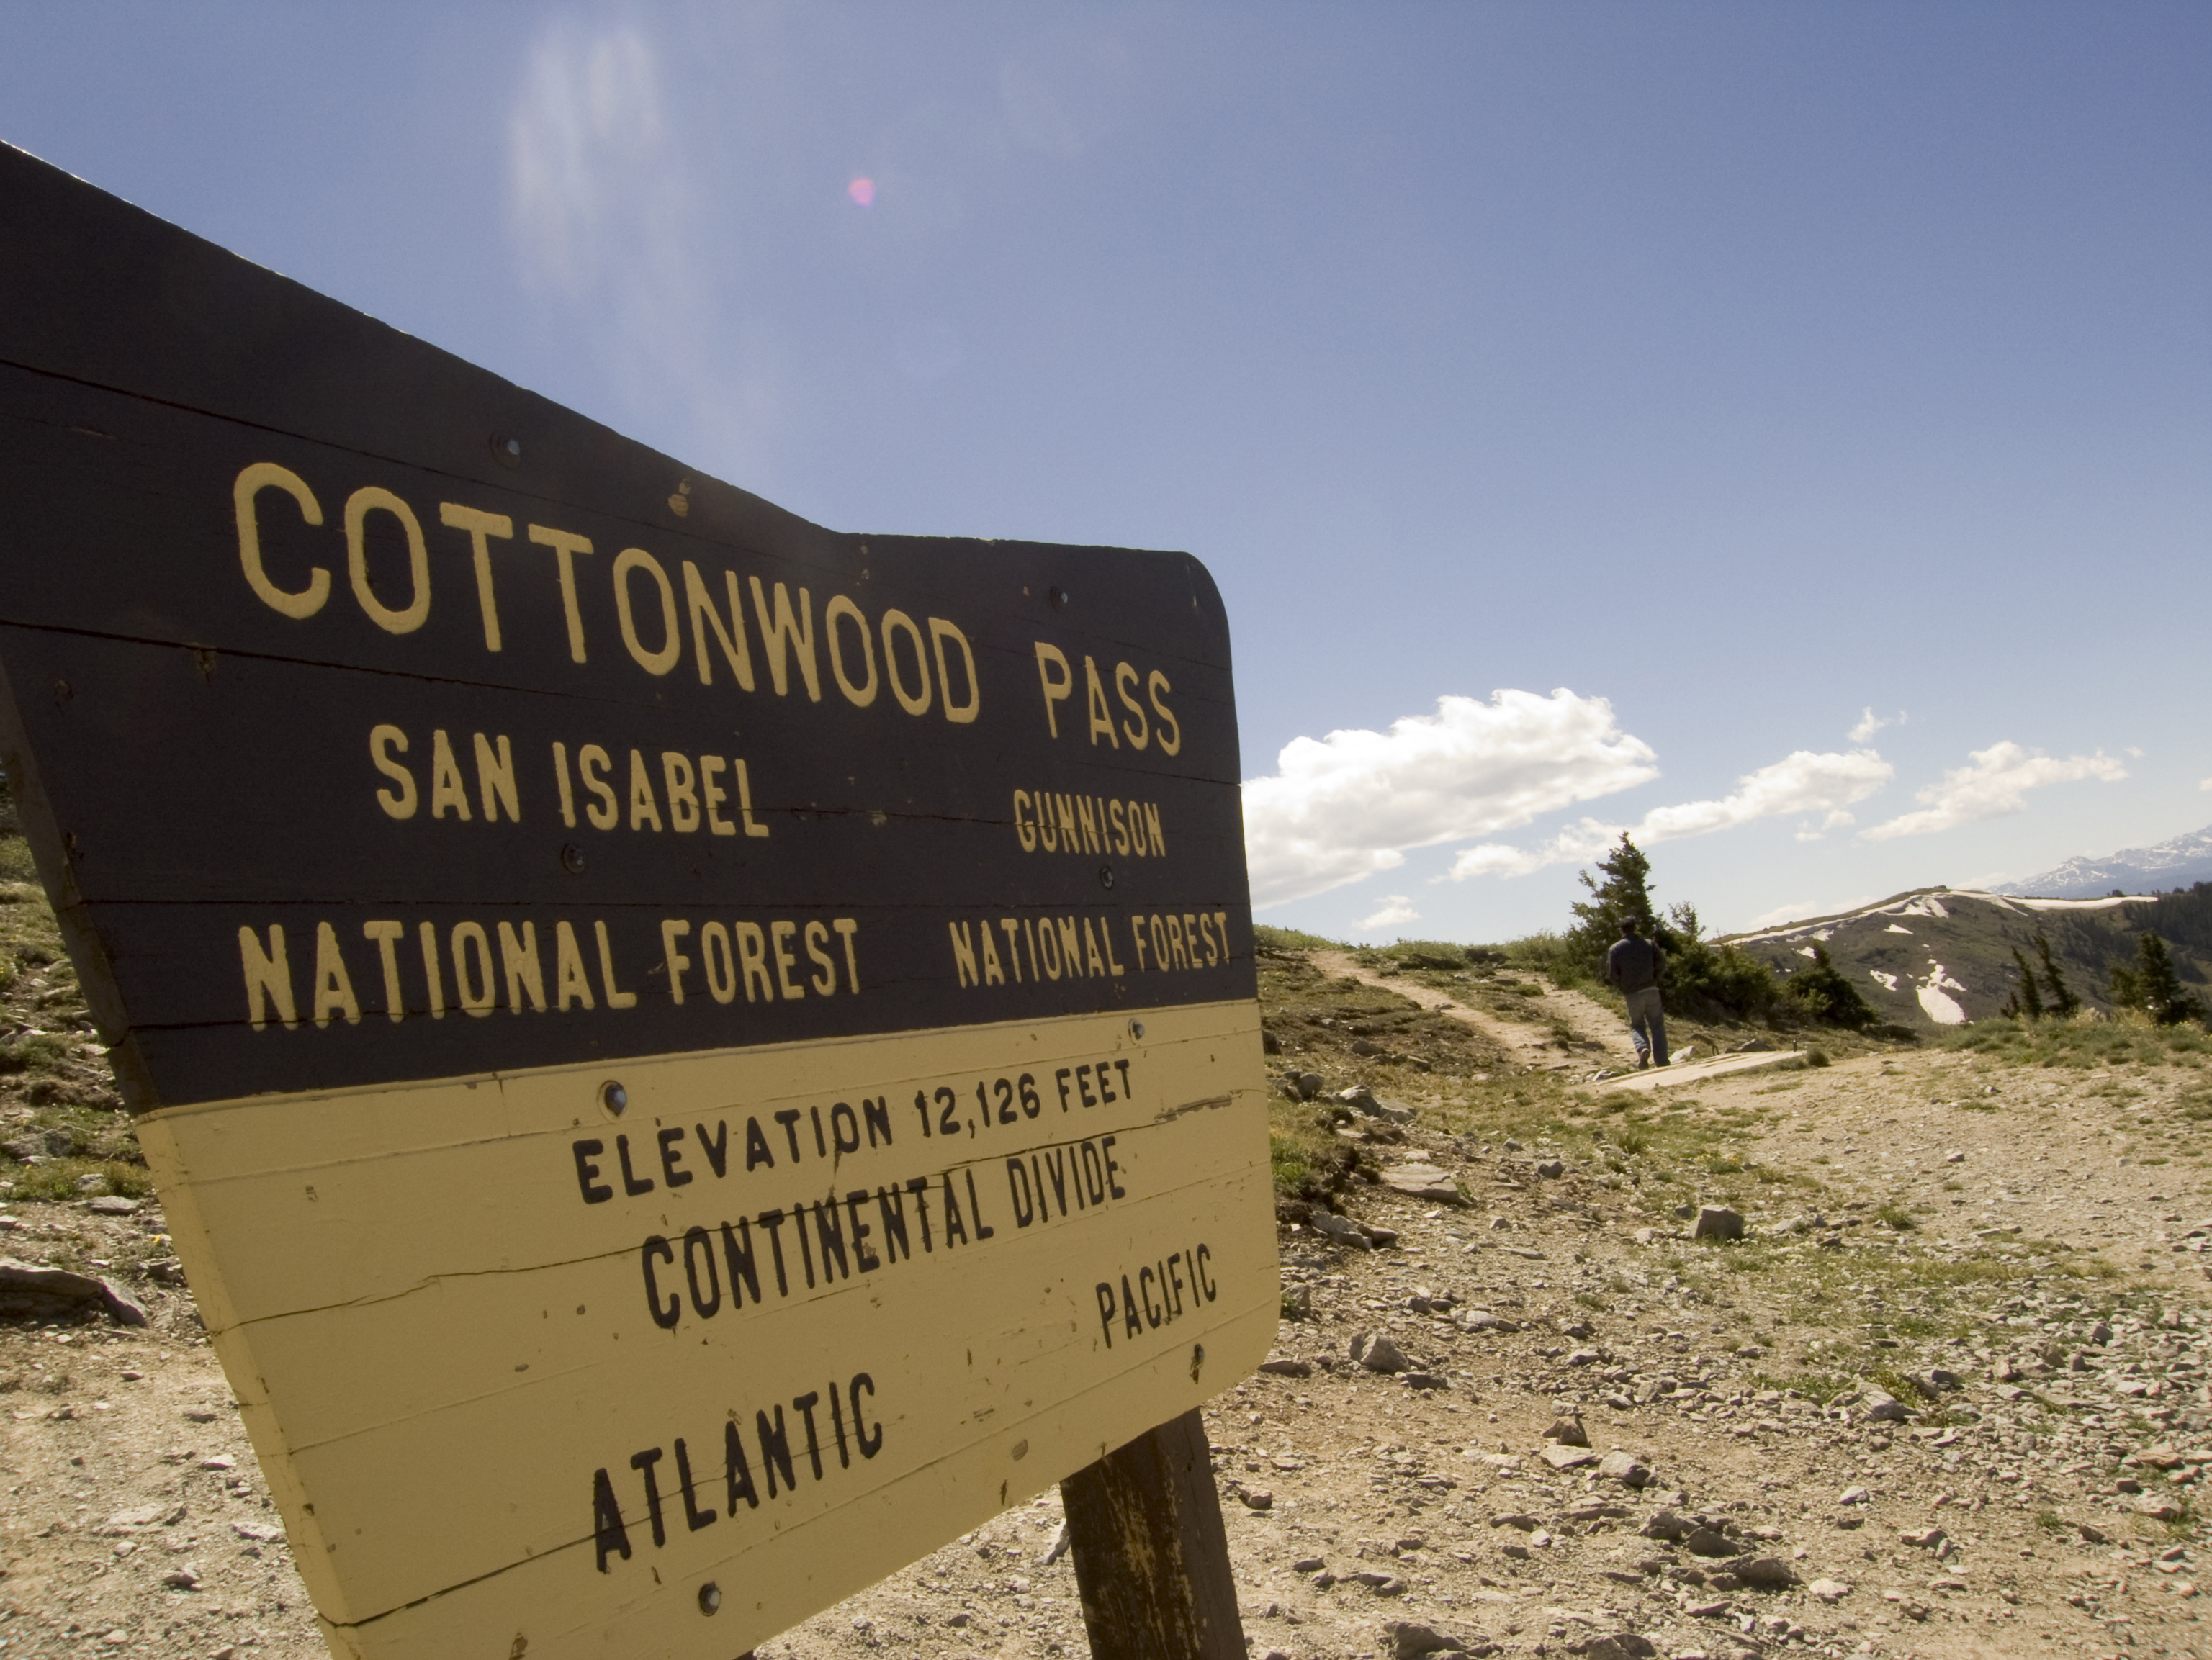 Hiking Cottonwood Pass At A Height Of Feet Above Sea Level - Elevation in feet above sea level